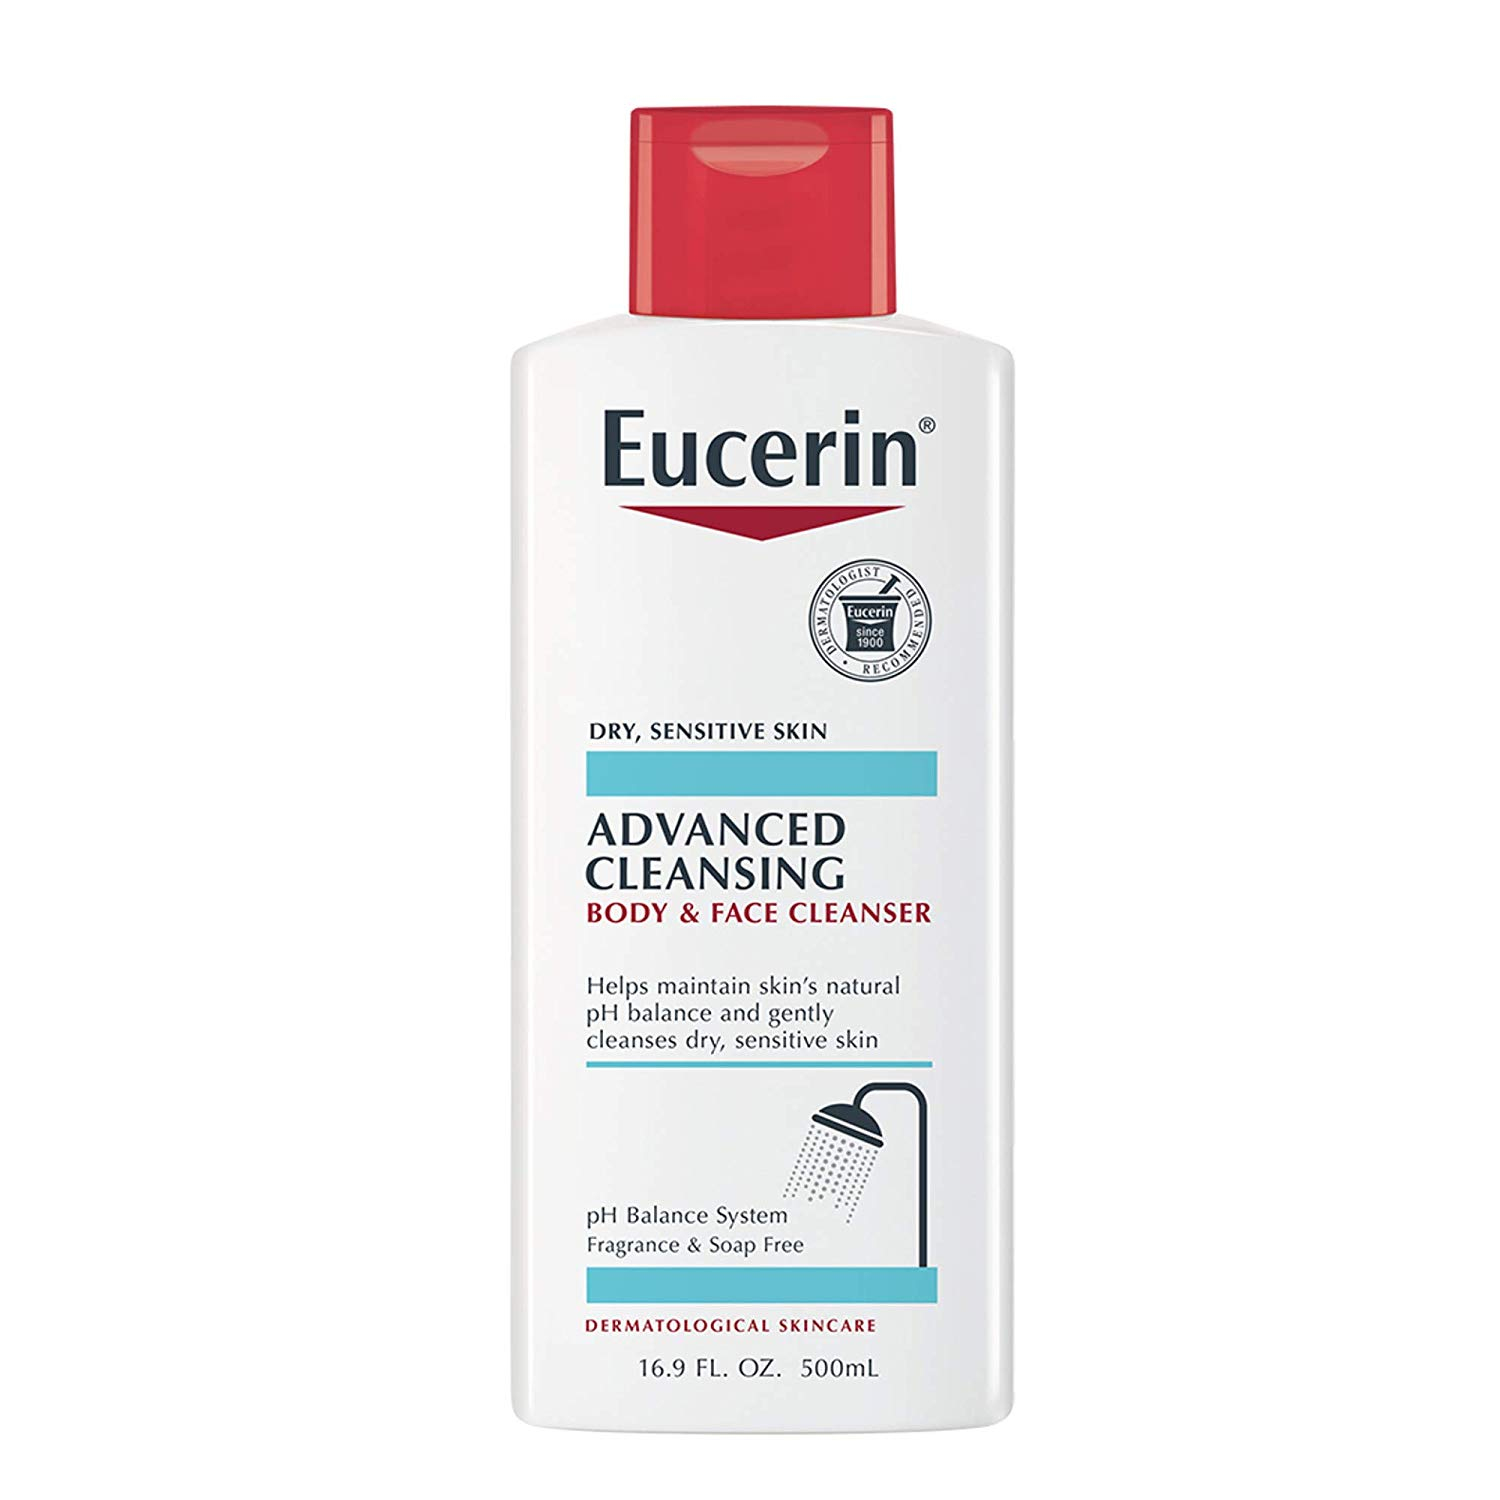 Eucerin Advanced Cleansing Body and Face Cleanser